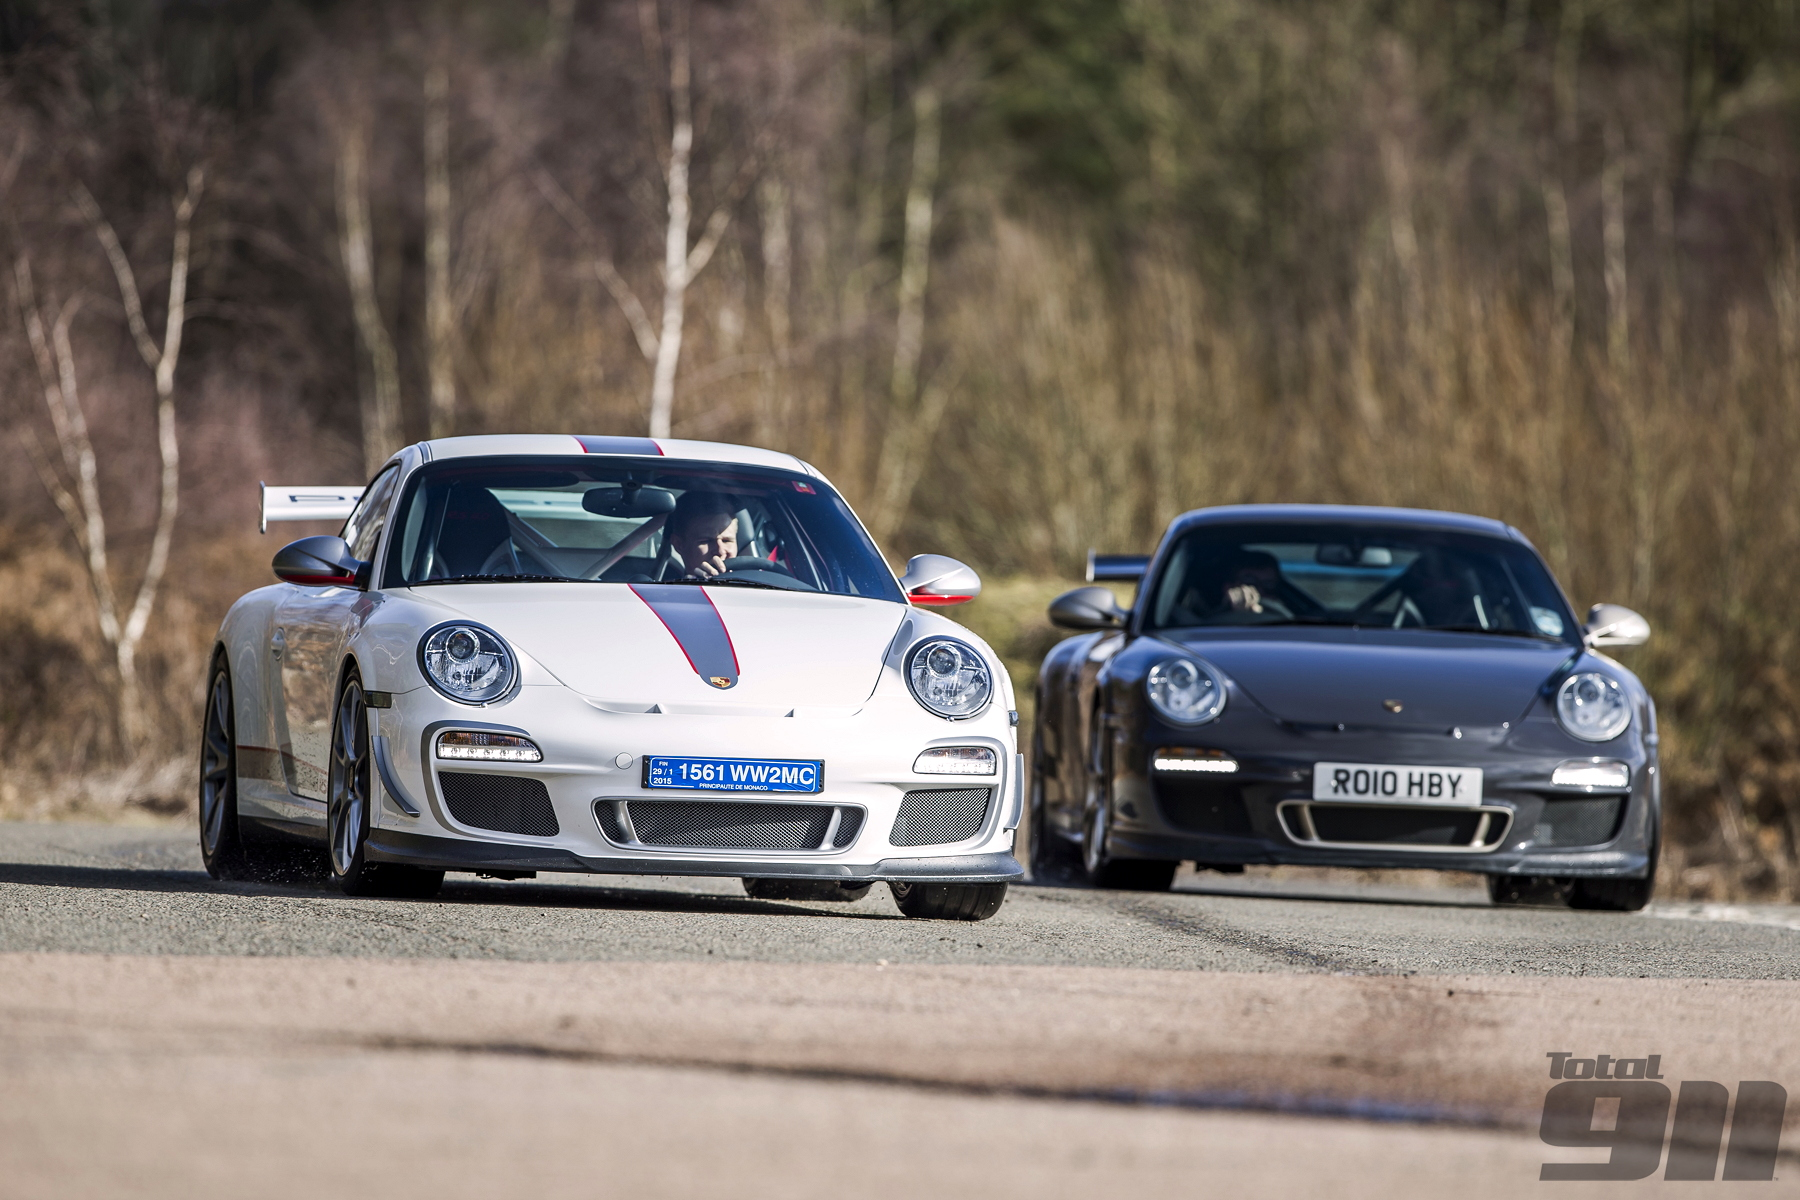 Porsche 997 Gt3 Rs Vs Rs 4 0 Rennsport Masters Total 911